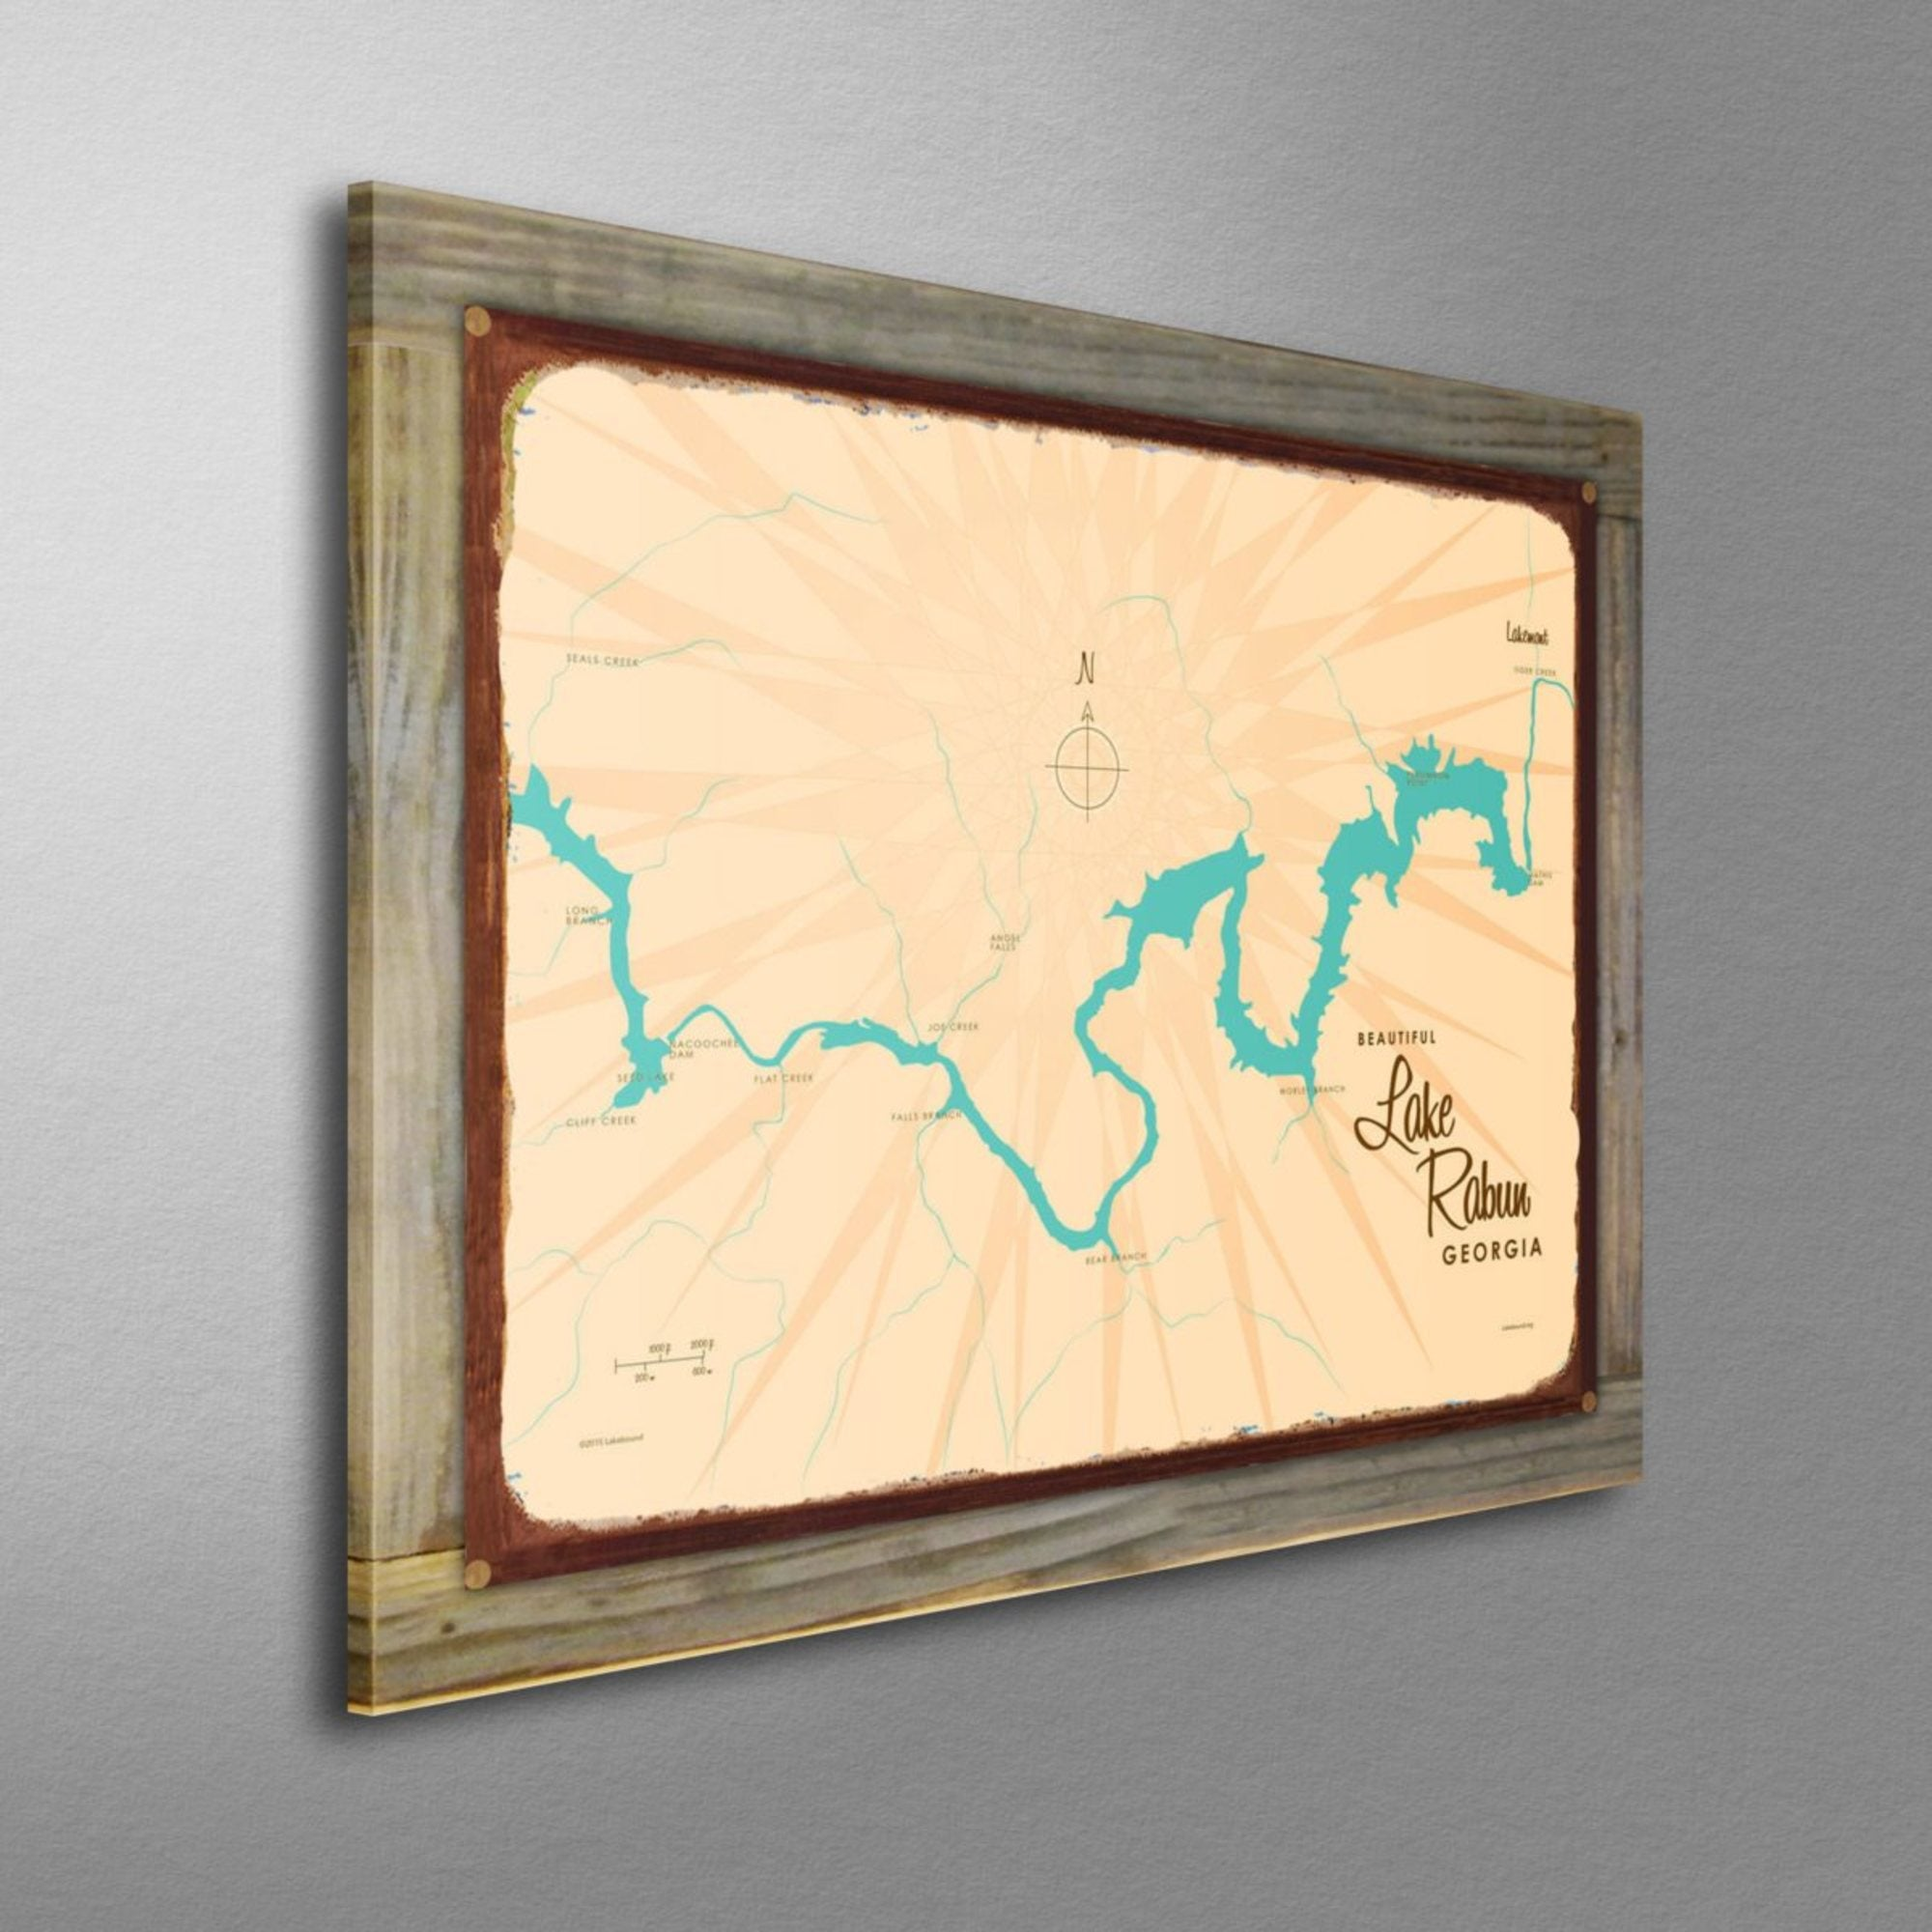 Lake Rabun Georgia, Wood-Mounted Rustic Metal Sign Map Art